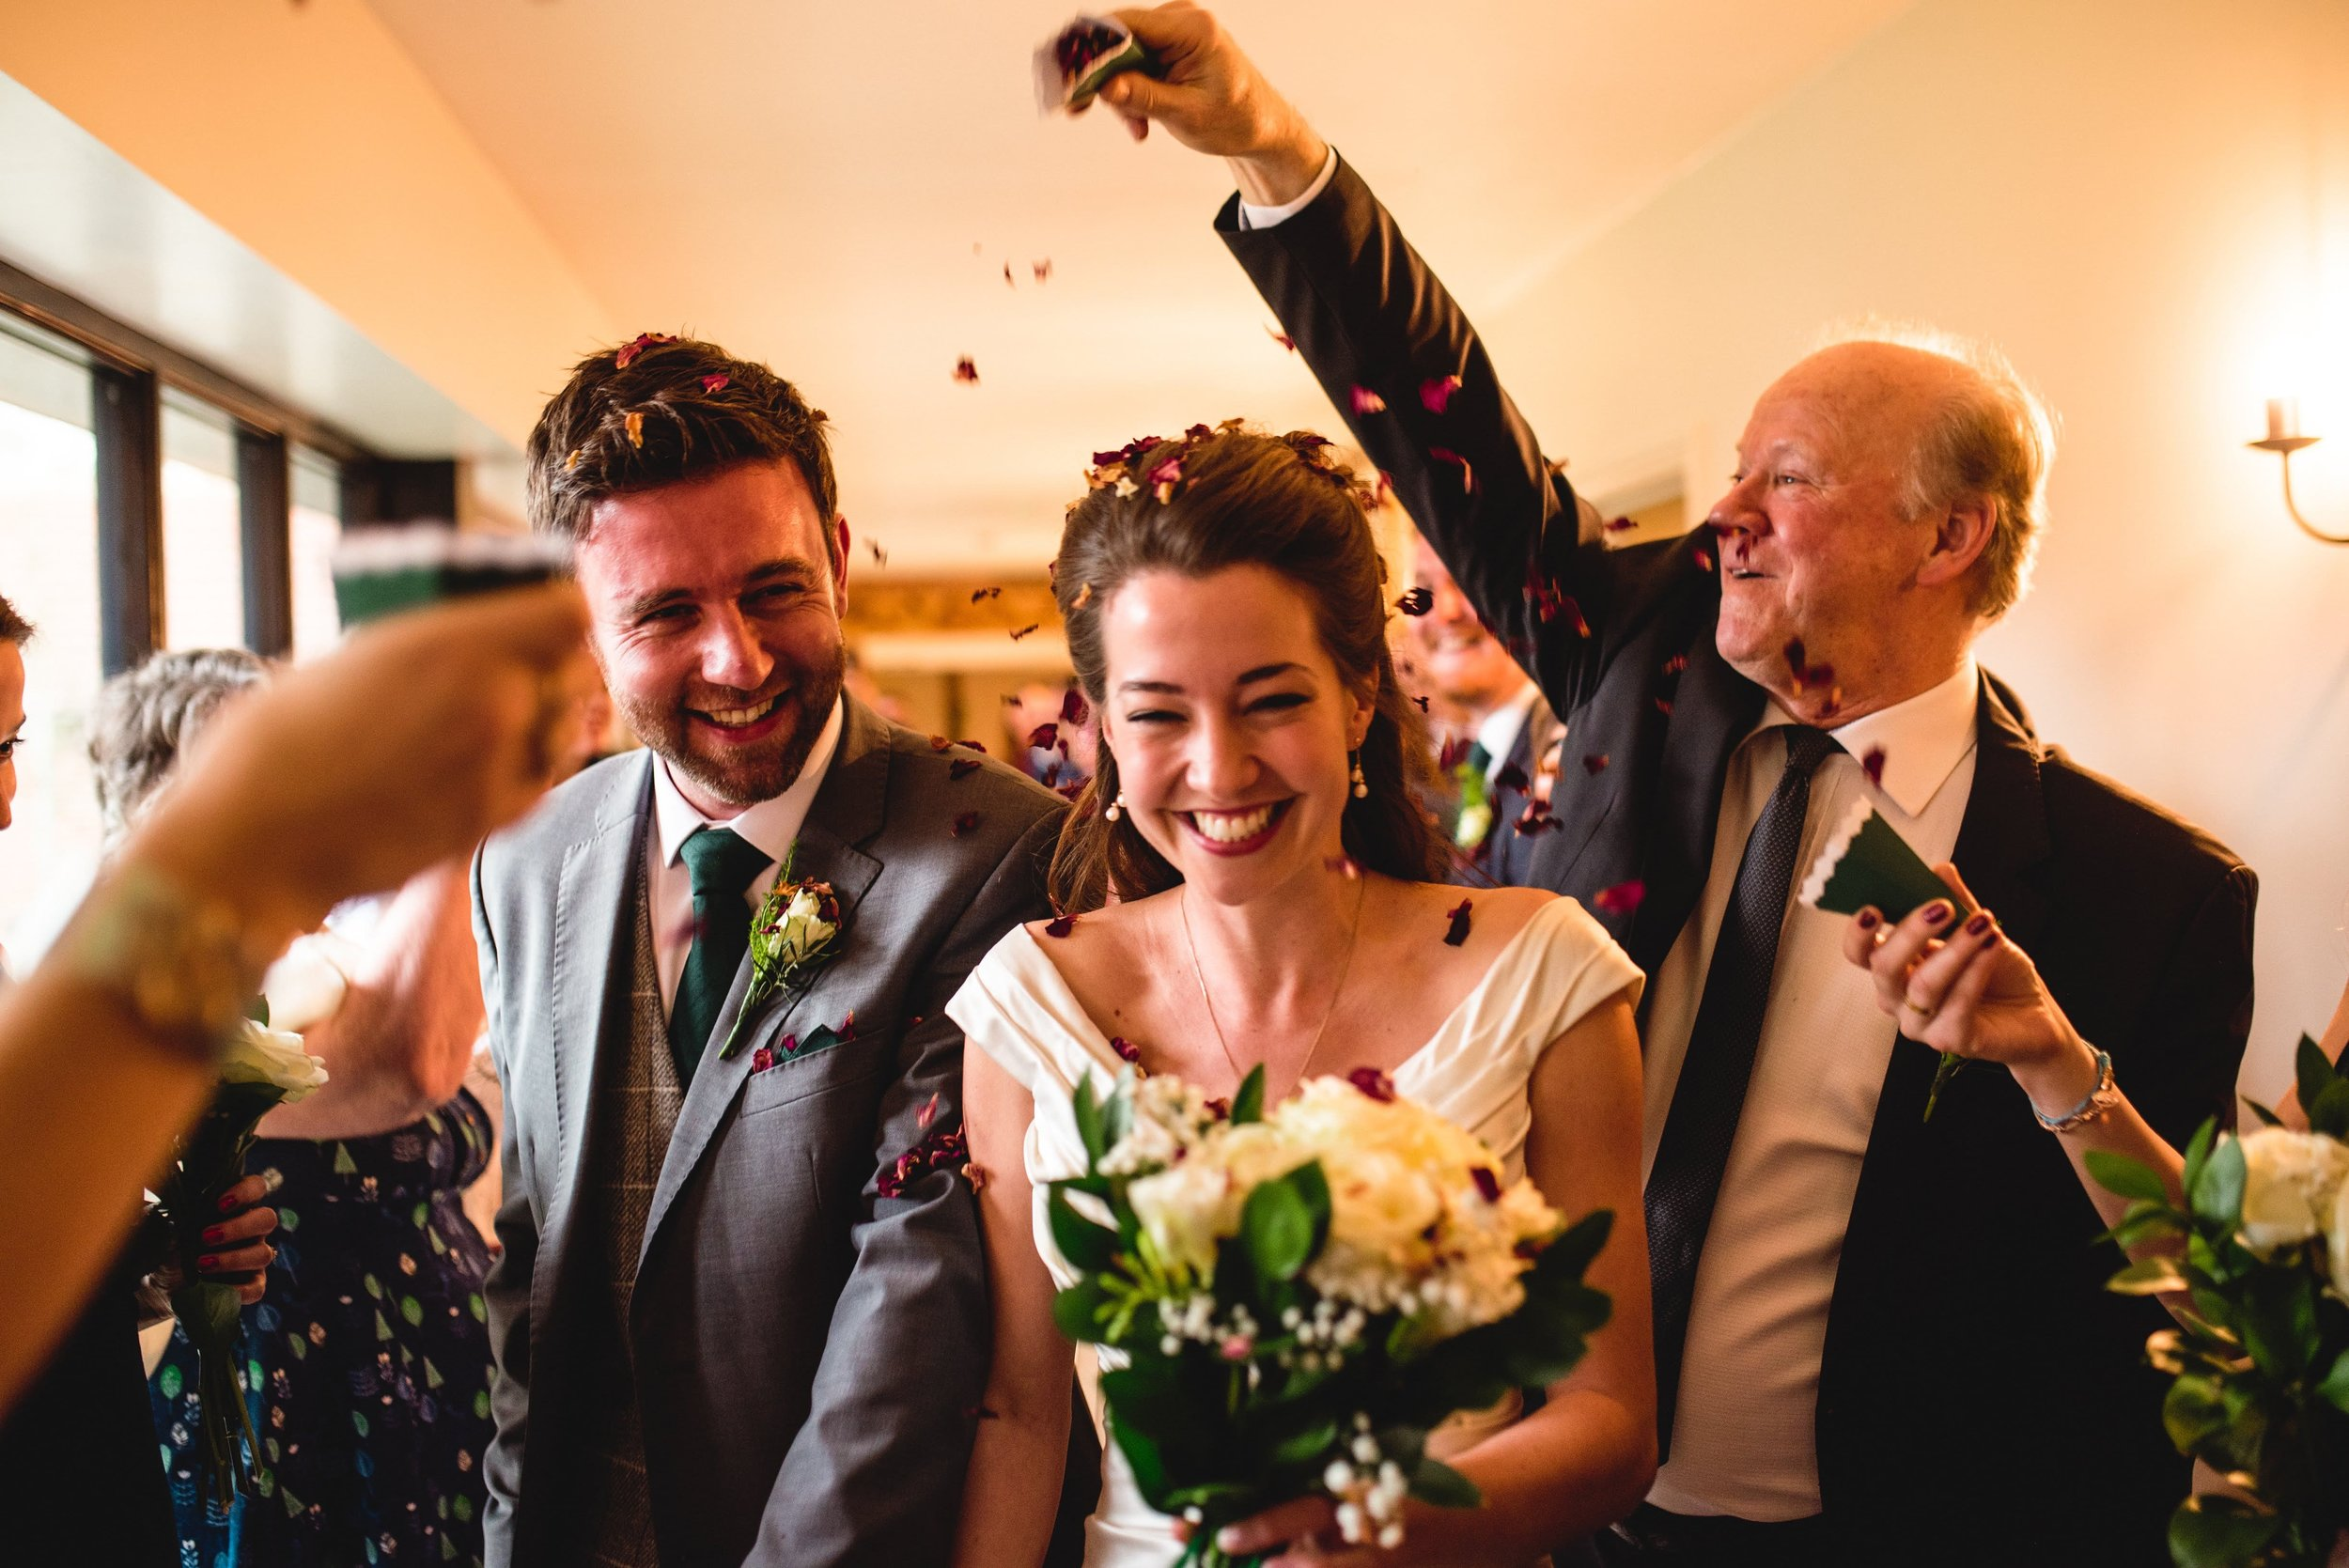 Julia and Ciaran-Colour-16February2019-263-min.jpg